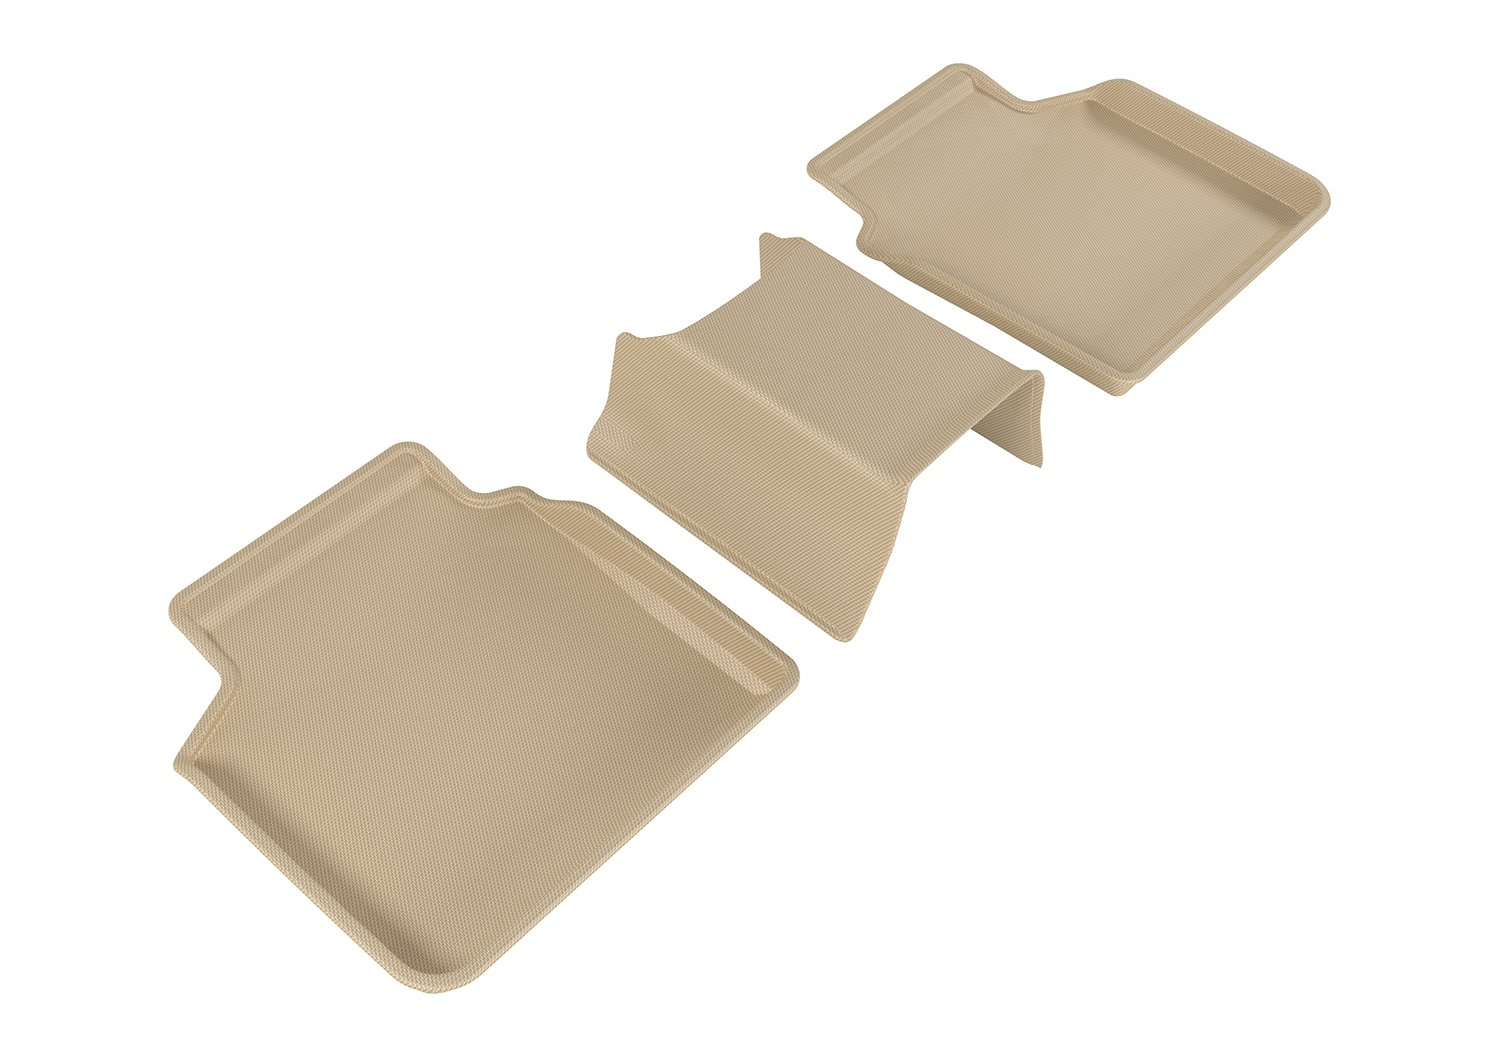 3D MAXpider Second Row Custom Fit All-Weather Floor Mat for Select BMW 7 Series (G12) Models - Kagu Rubber (Tan)